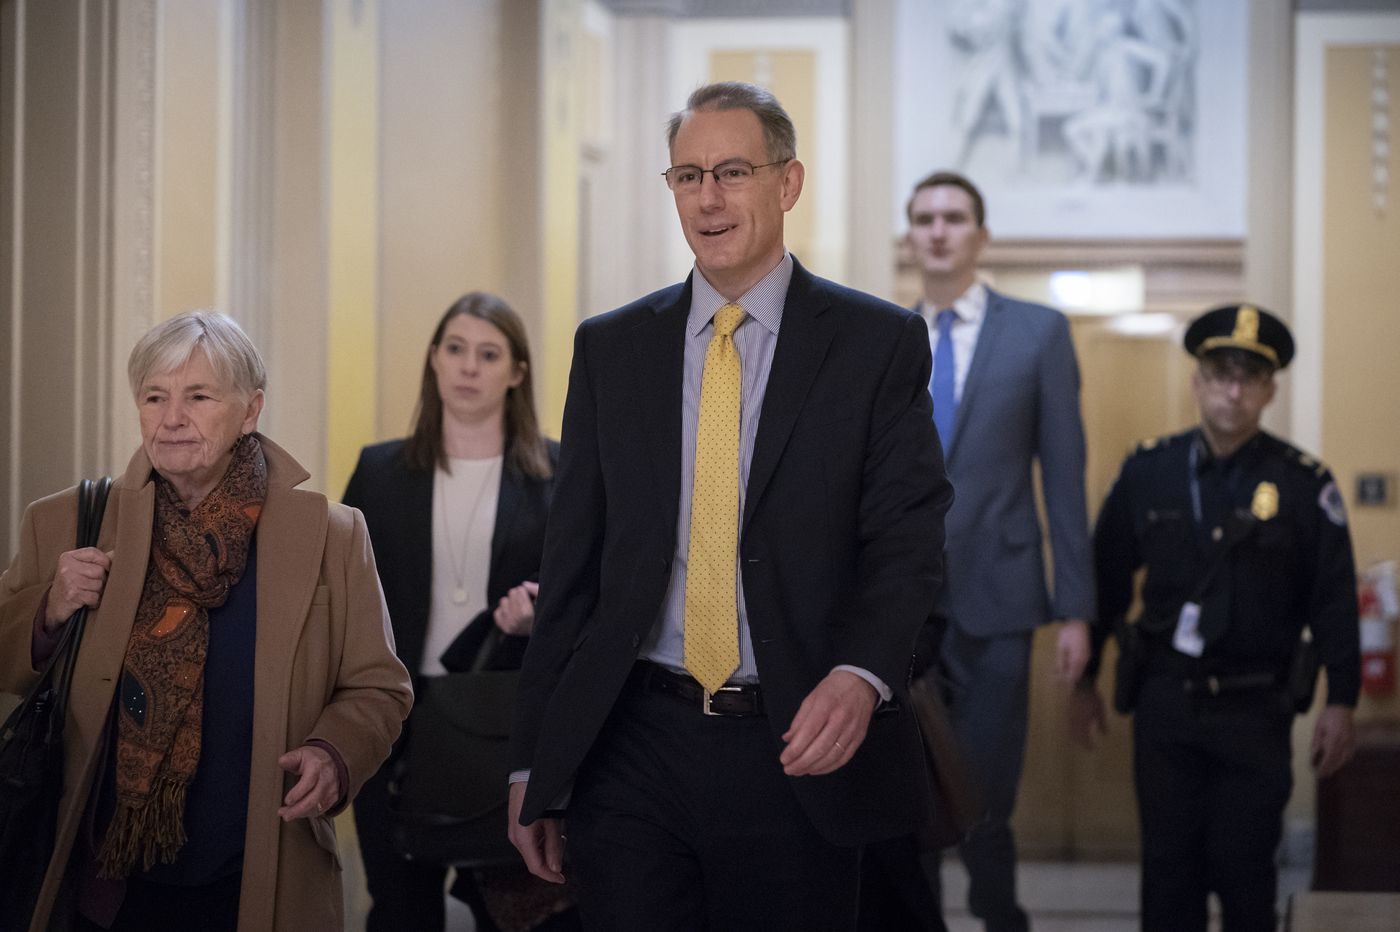 White House budget official with knowledge of delay in military aid to Ukraine testifies